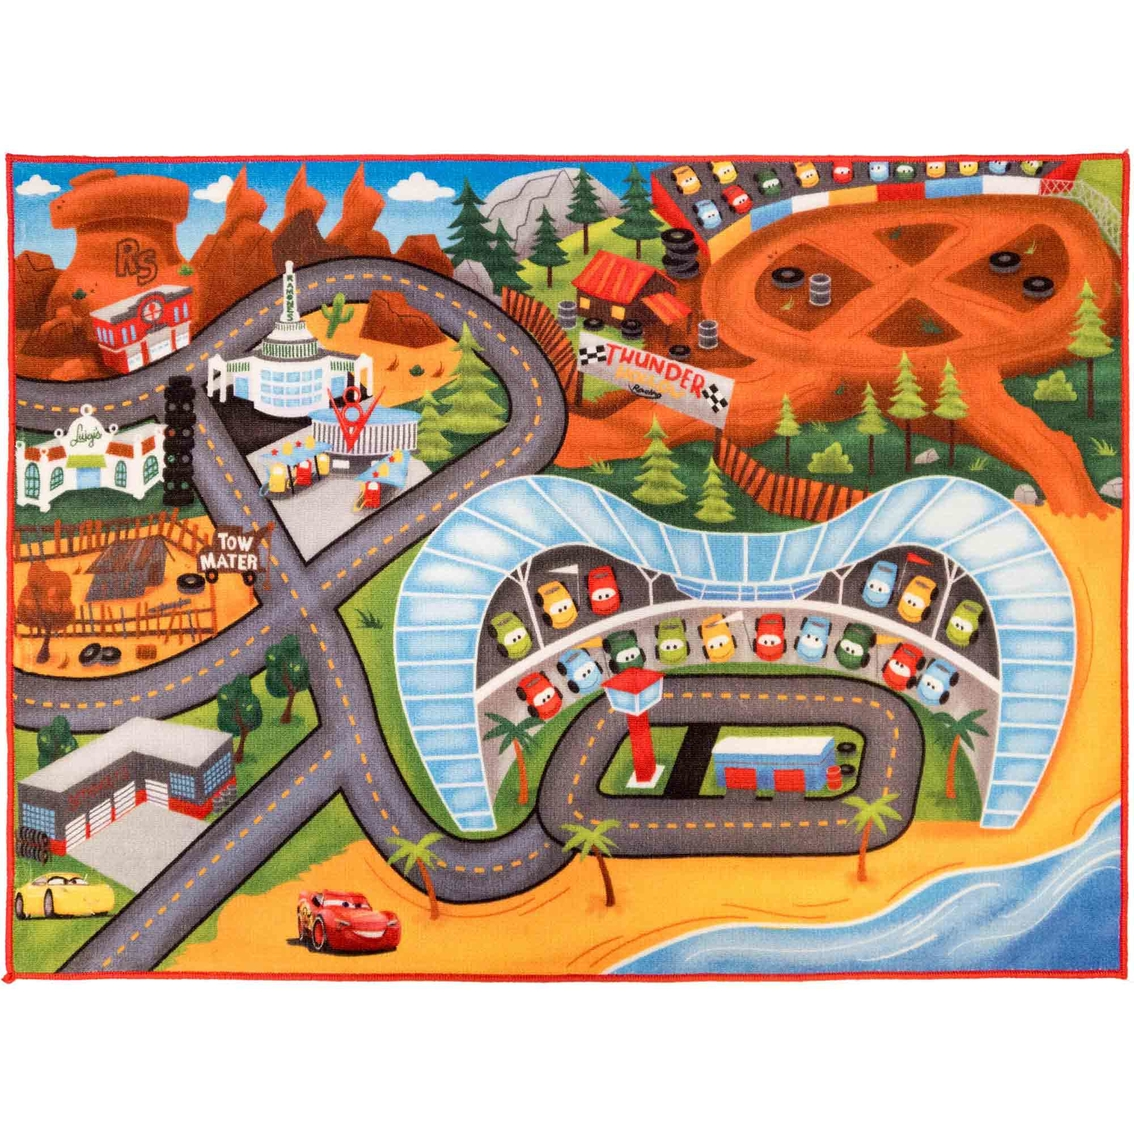 Cars 3 Interactive Game Rug 31.5 X 44 In.